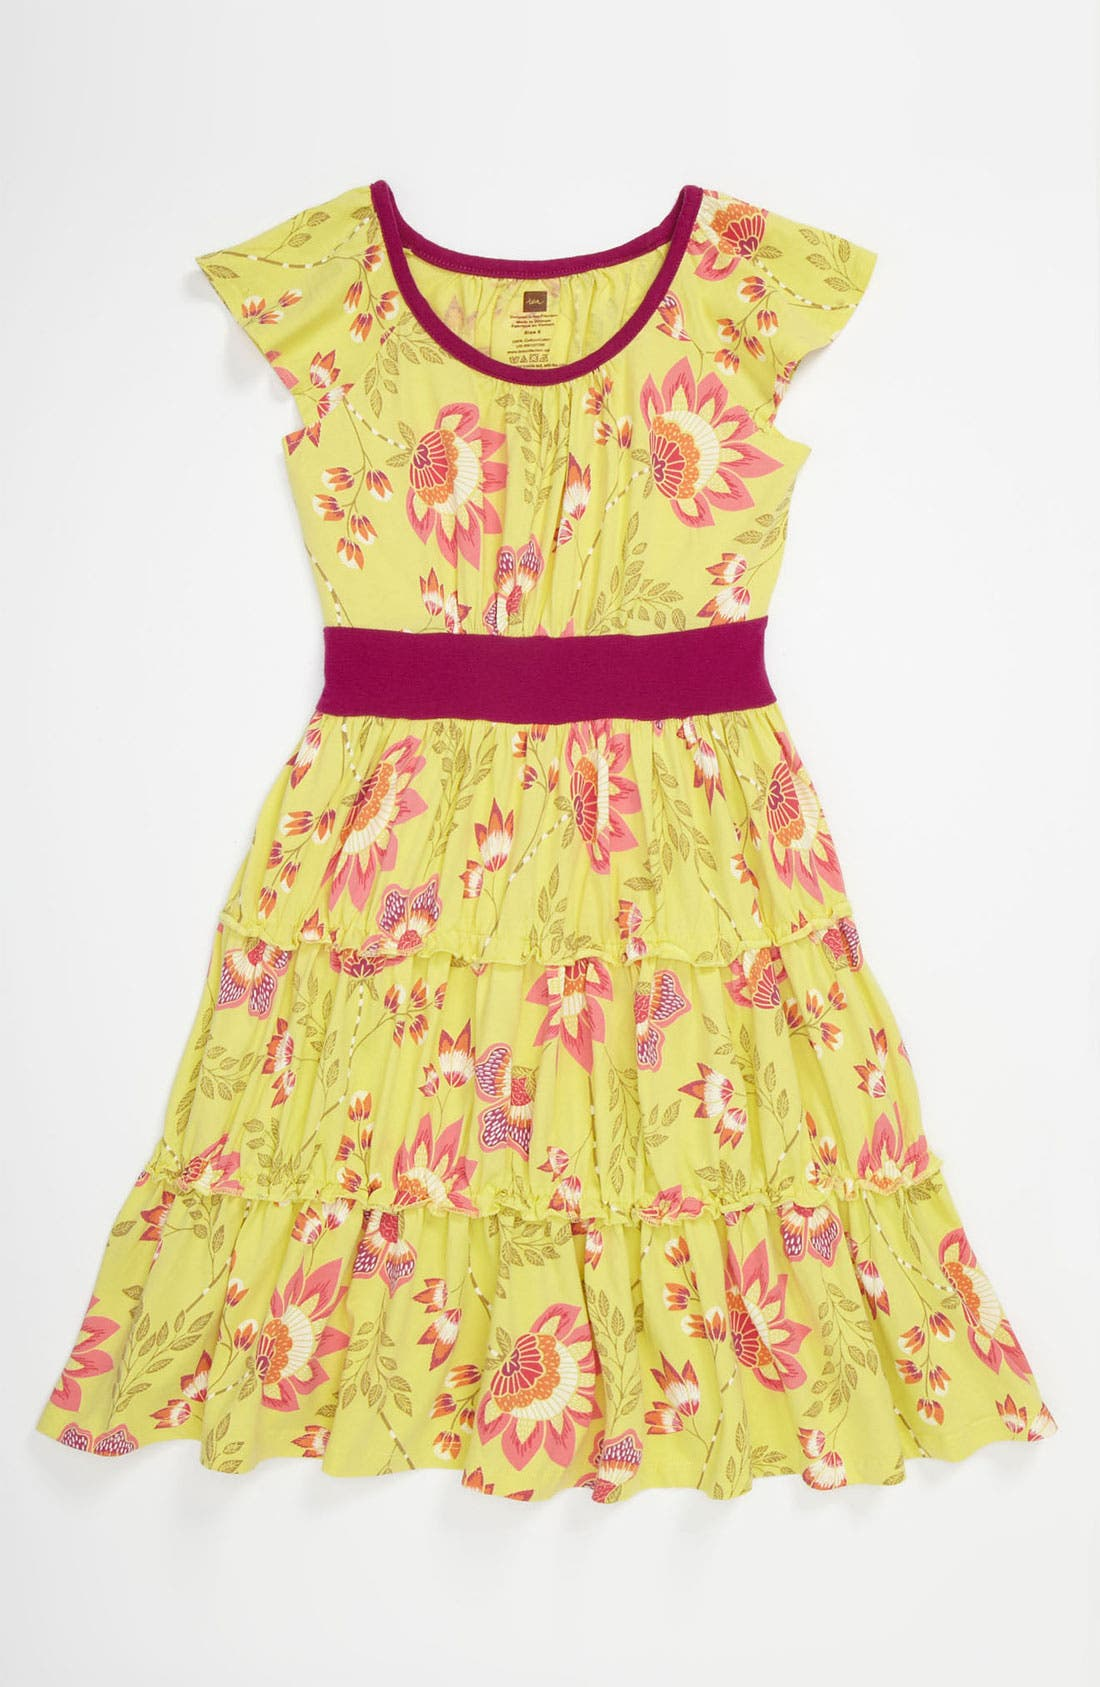 Alternate Image 1 Selected - Tea Collection 'Ardmore' Dress (Toddler)